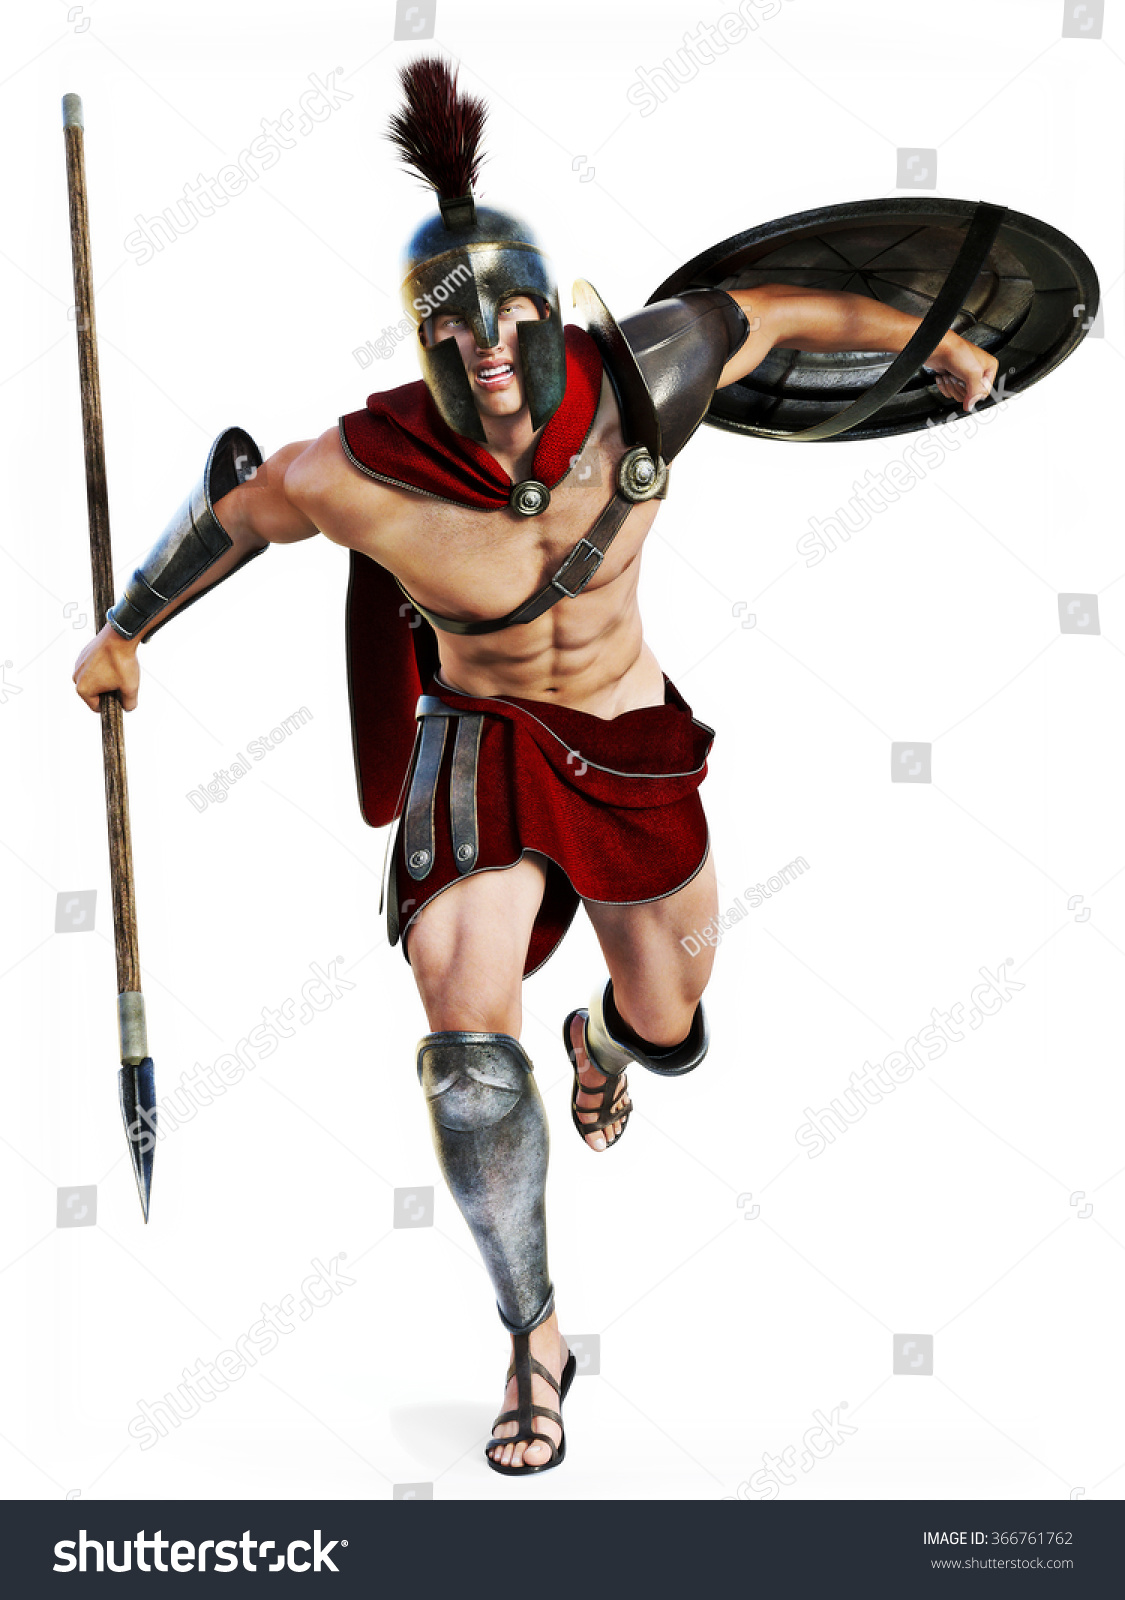 Spartan Charge Full Length Illustration Of A Spartan